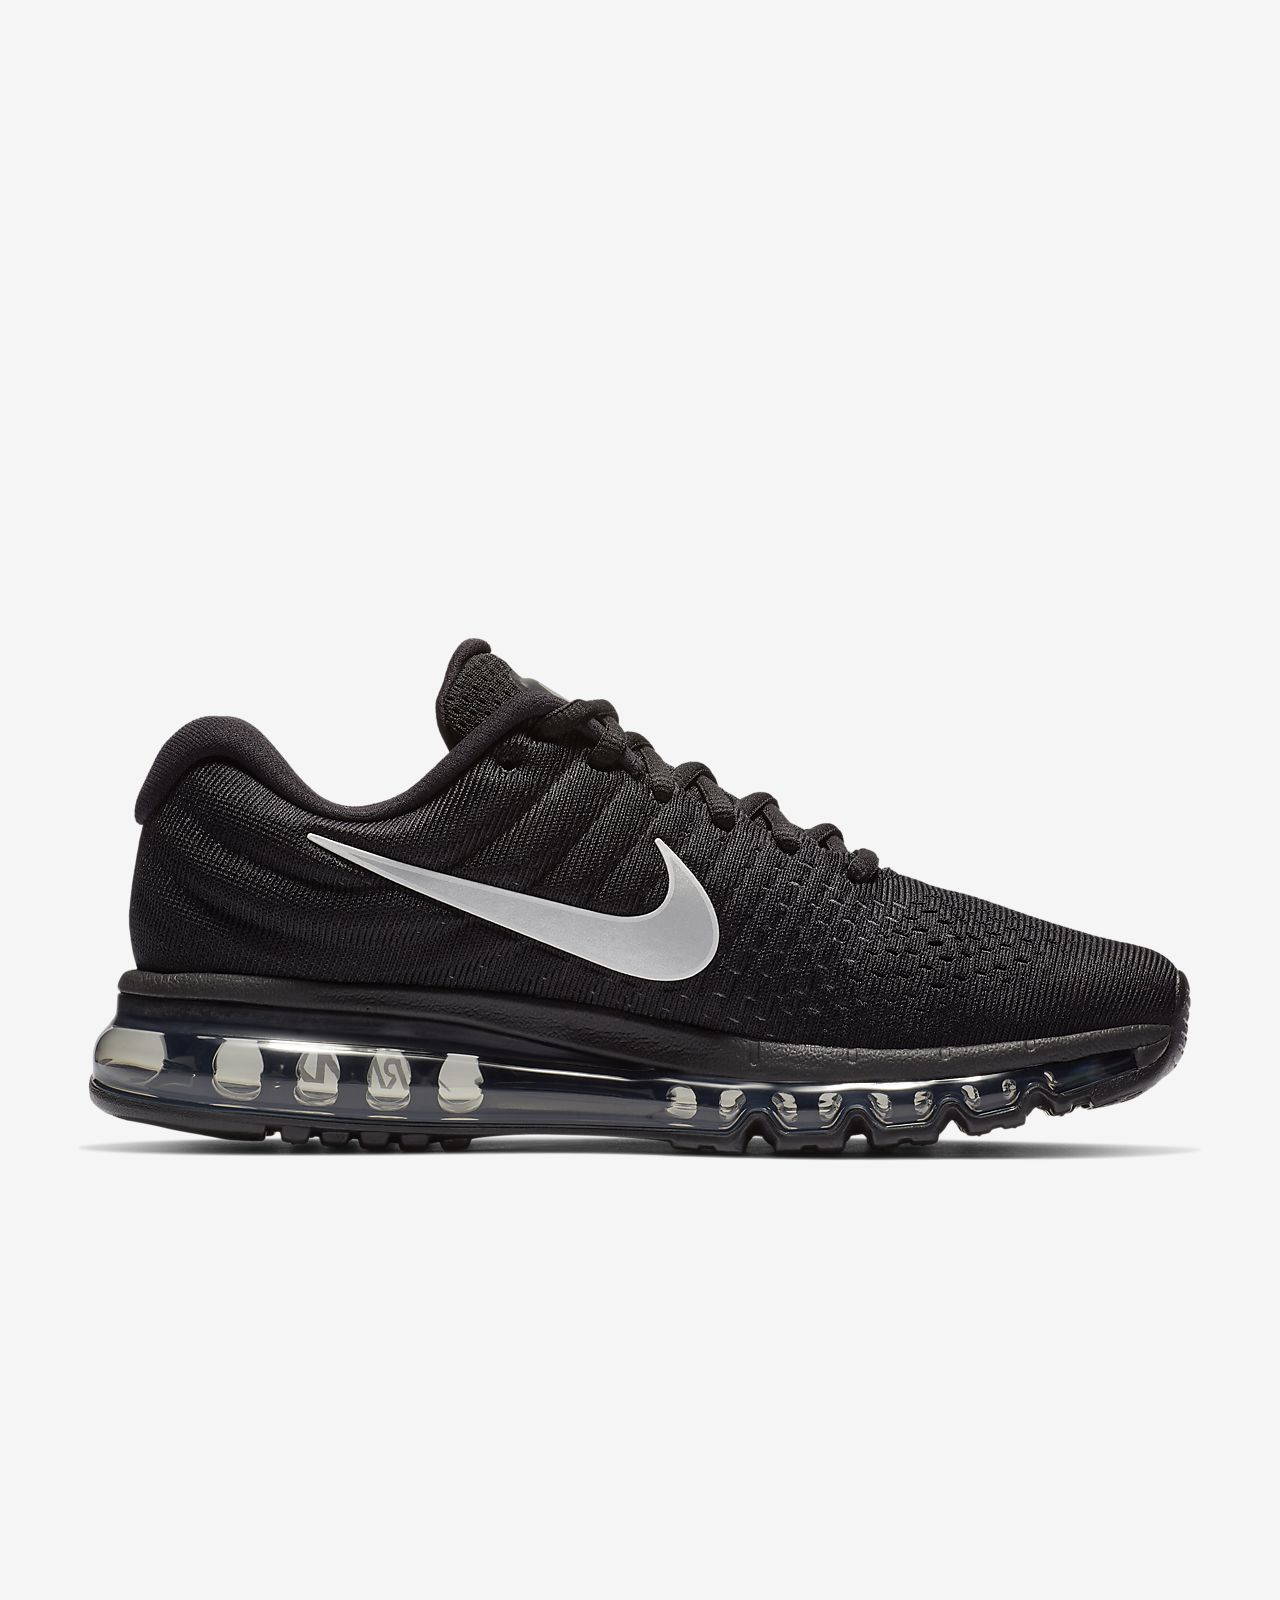 4b8d882be53 Chaussure Nike Air Max 2017 pour Homme. Nike.com MA